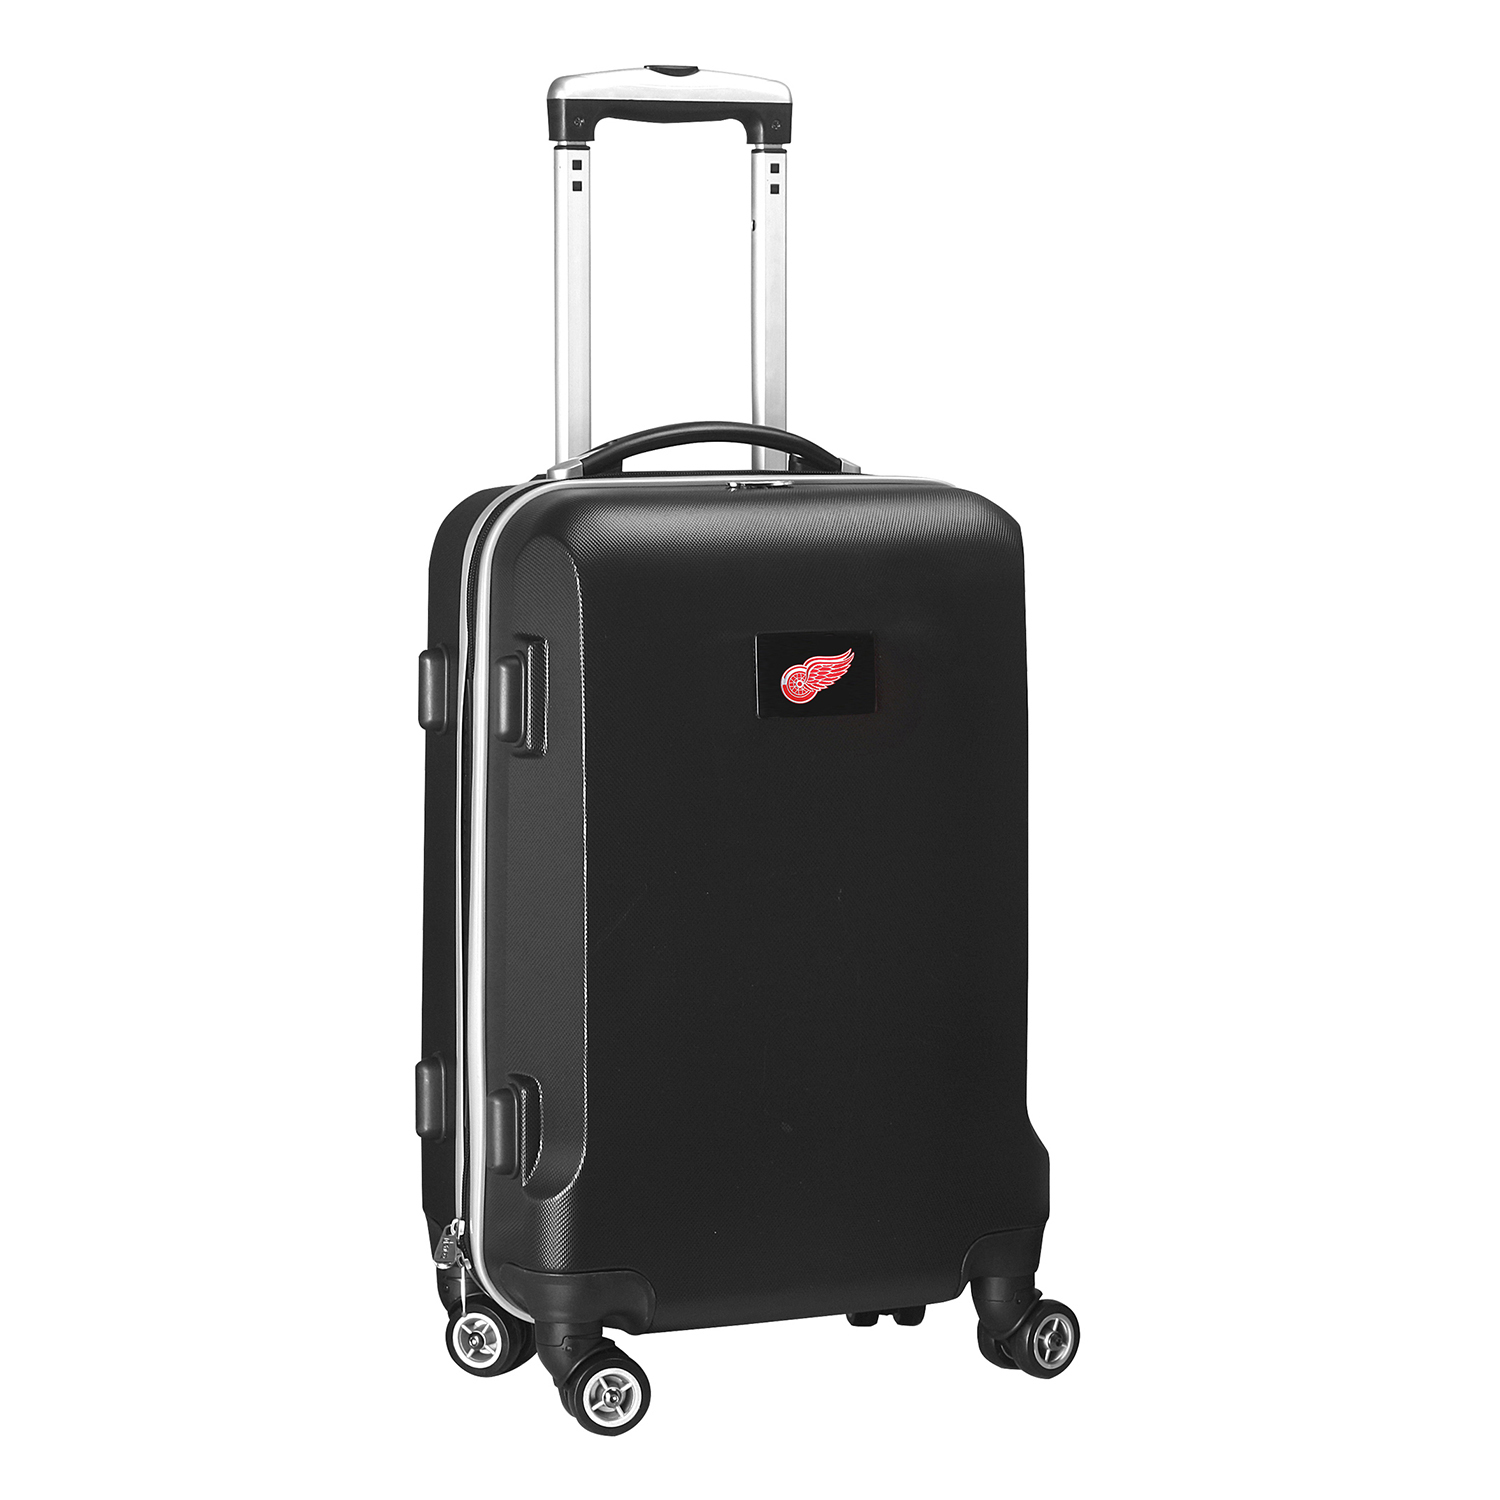 """Denco 2-In-1 Hard Case Rolling Carry-On Luggage, 21""""H x 13""""W x 9""""D, Detroit Redwings, Black"""